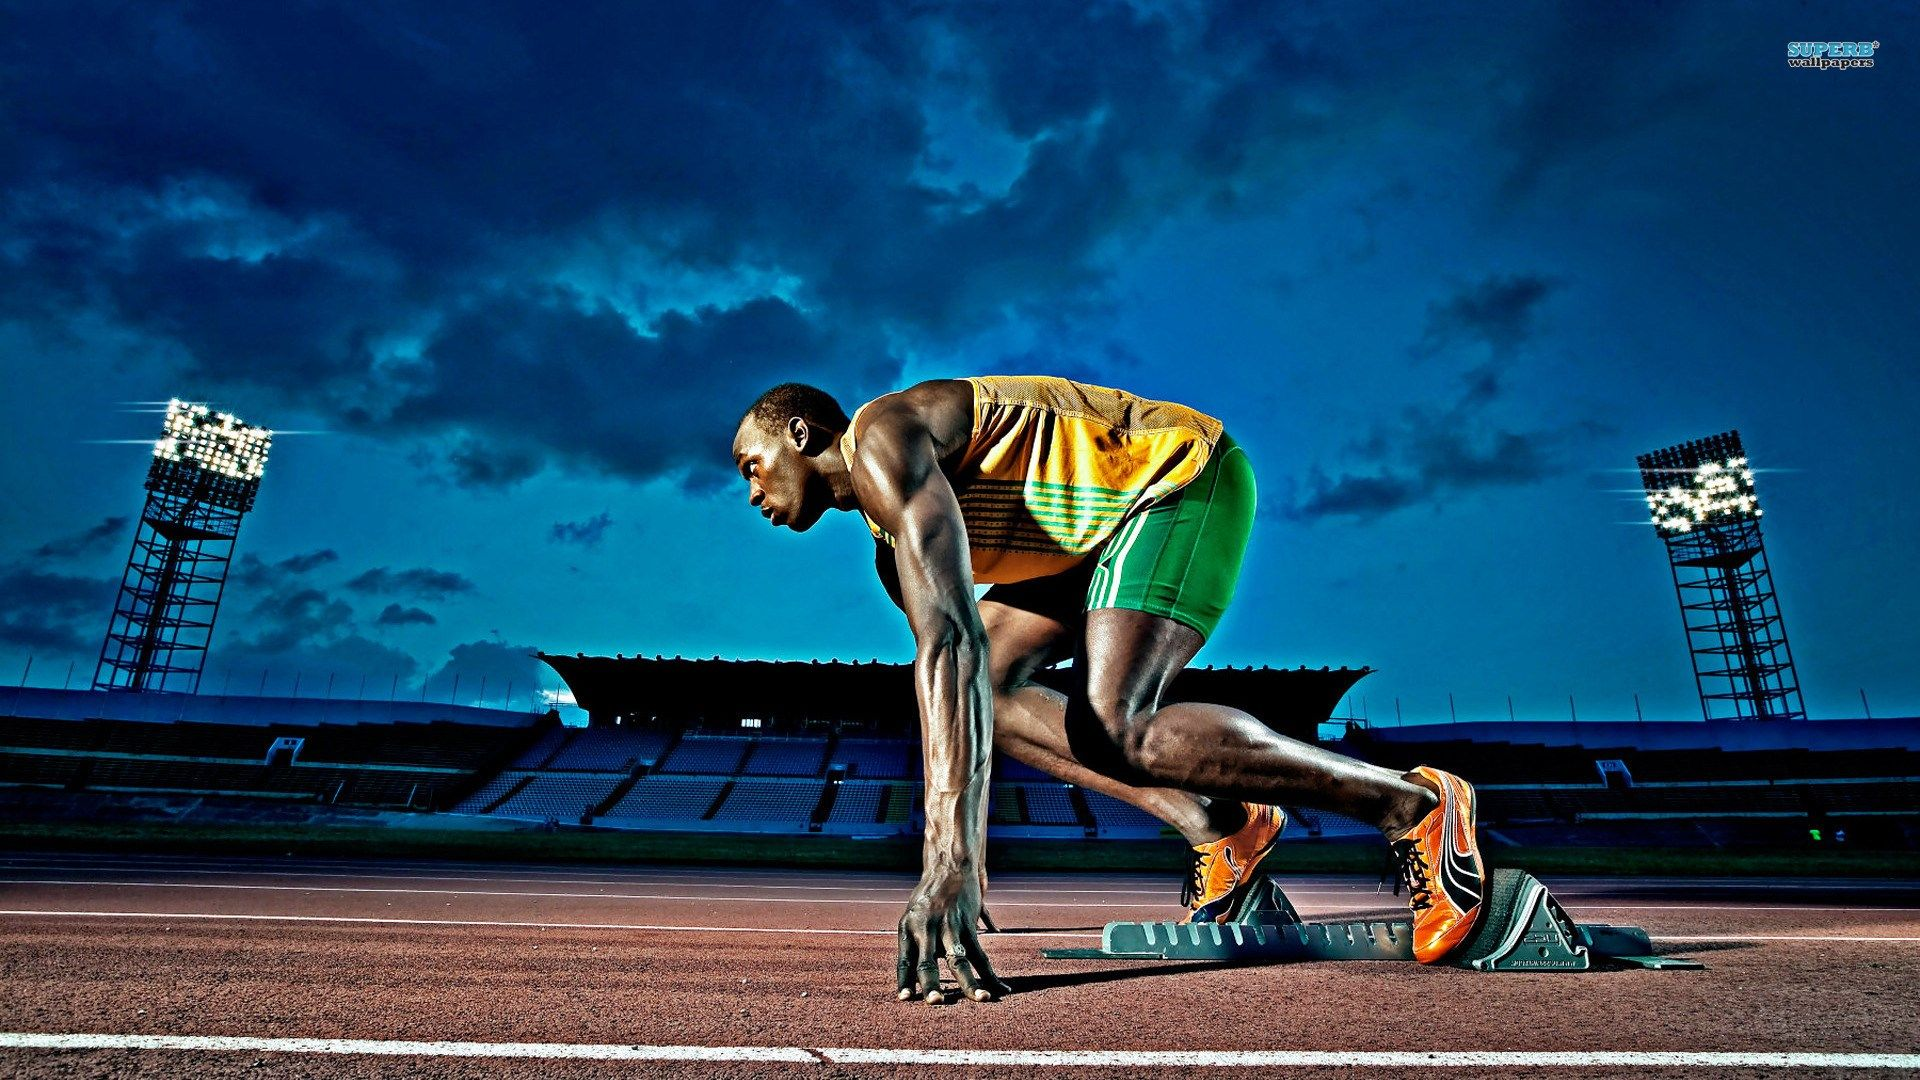 HD Widescreen Usain Bolt Wallpaper 463 KB